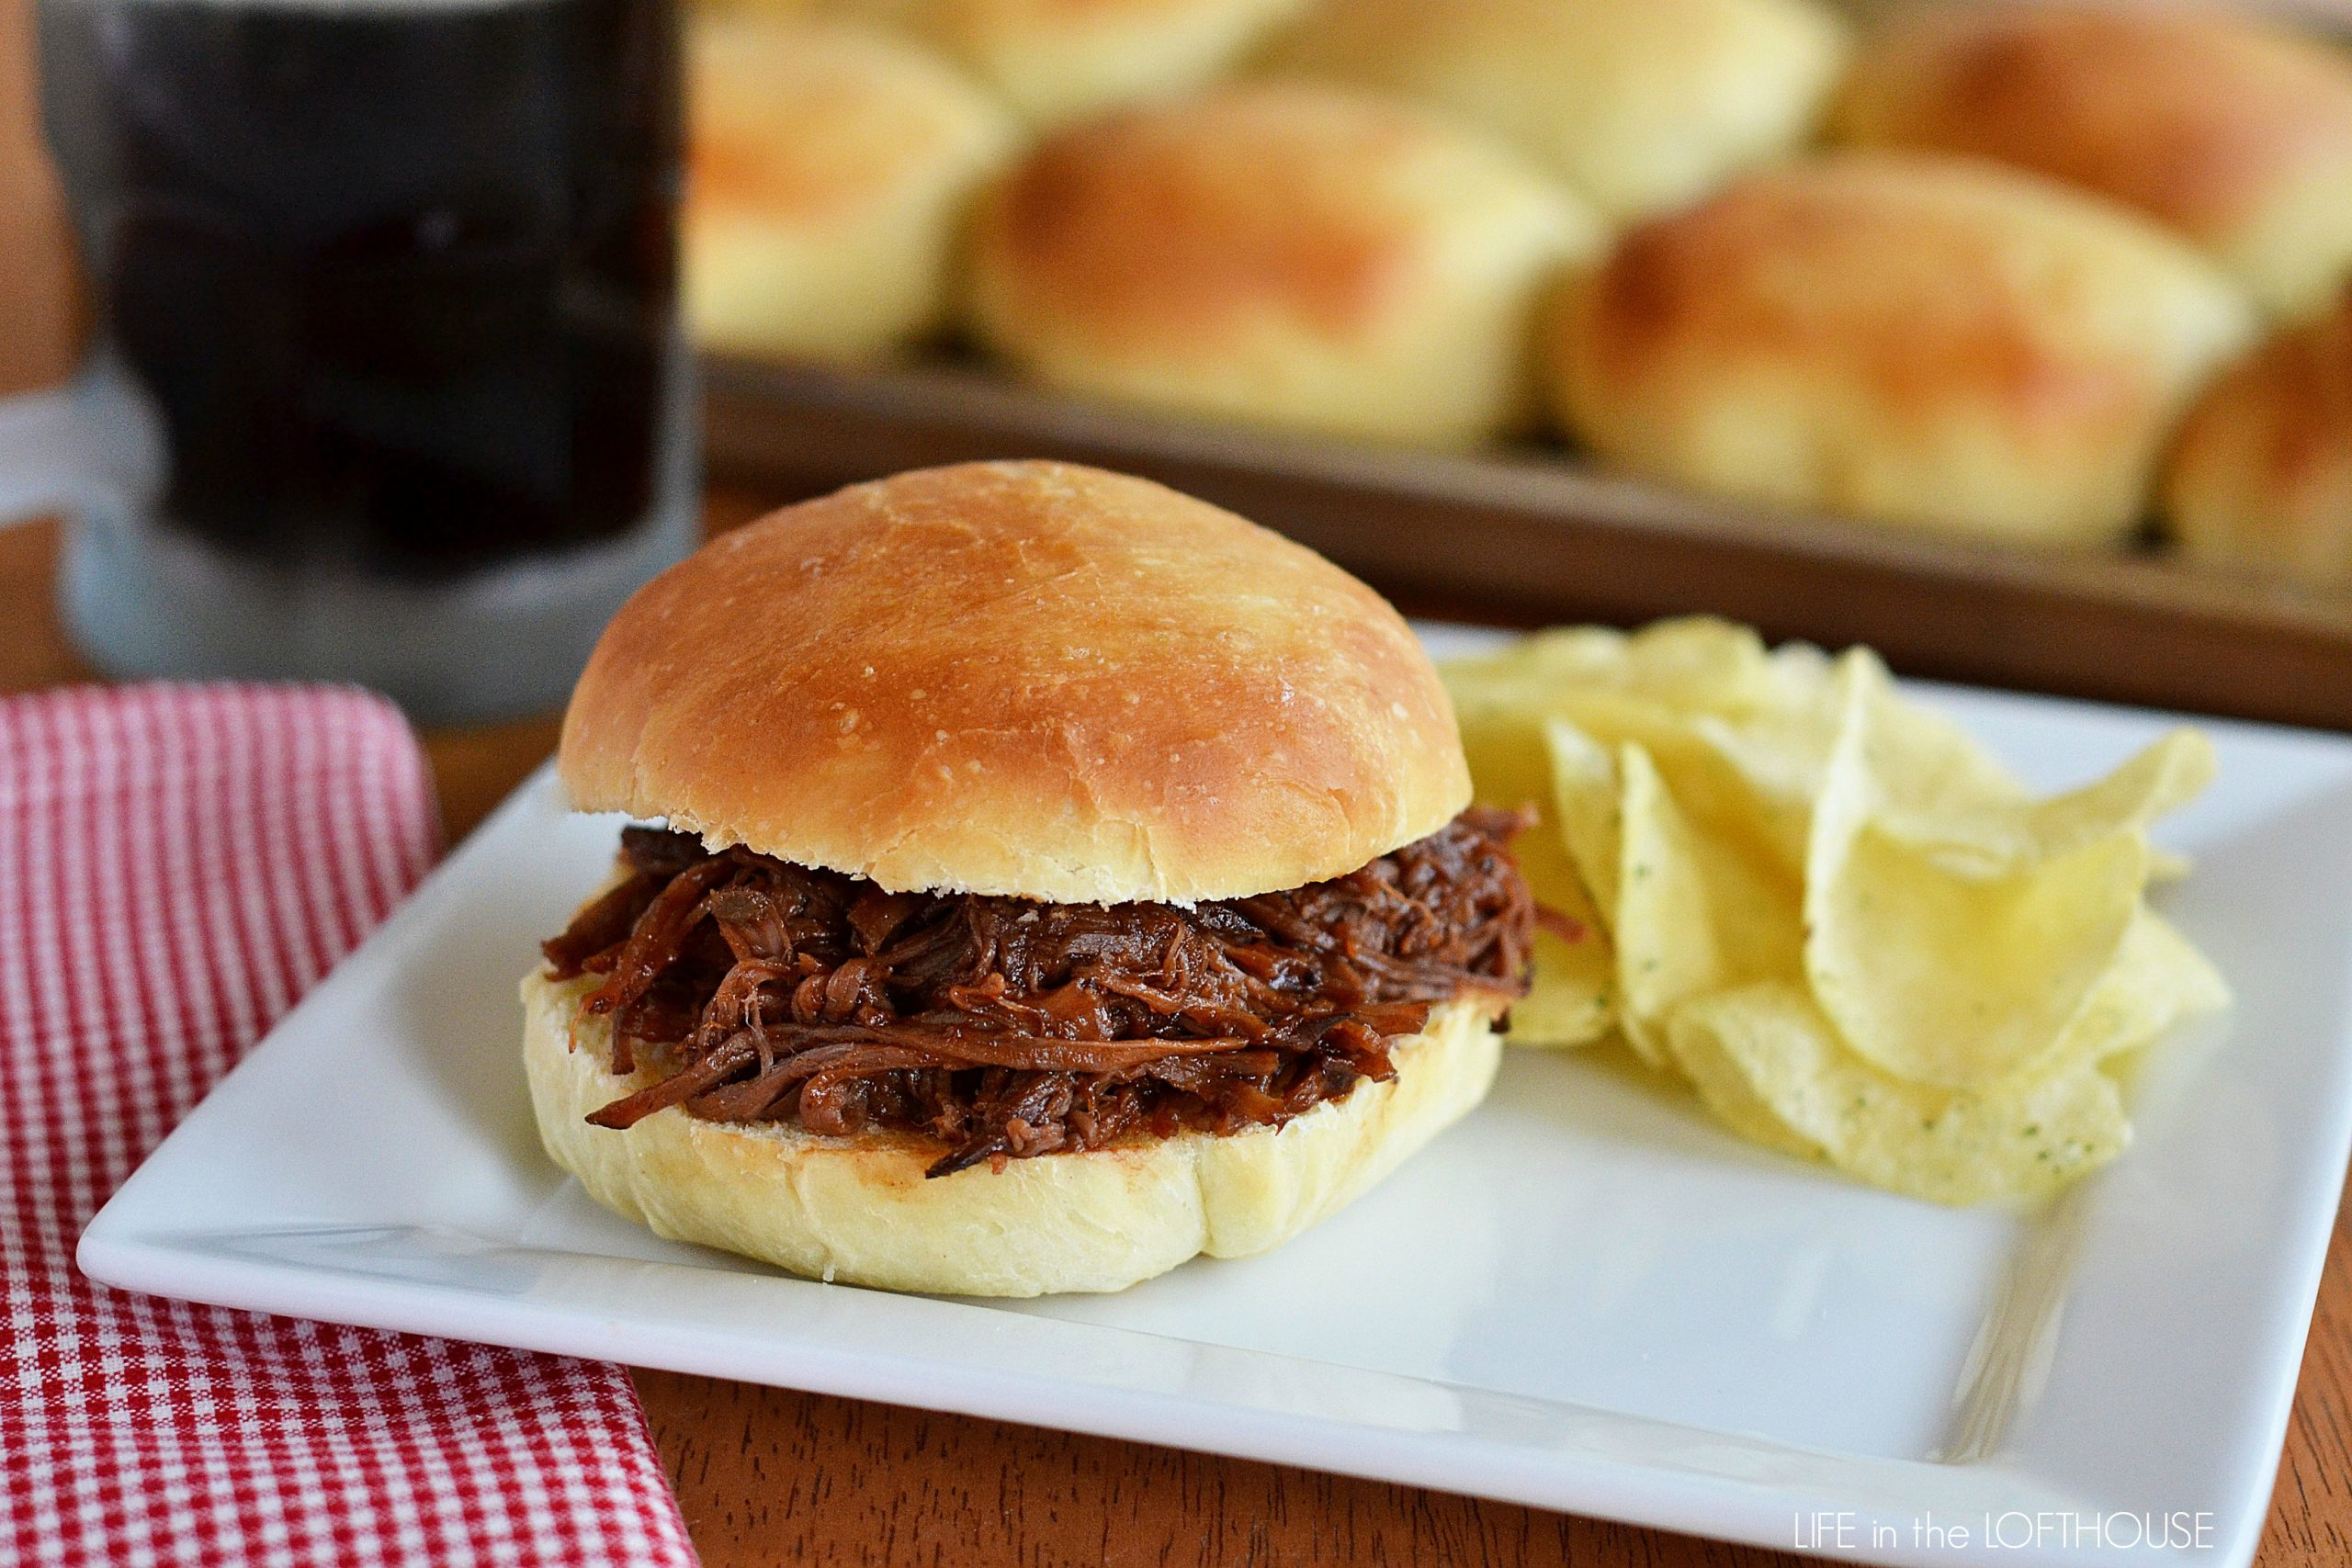 Crock Pot Pulled Pork Sandwich Recipe. This easy Crock Pot Pulled Pork Sandwich Recipe is one of our favorite family crock pot recipes made with only 5 ingredients.. It is a great recipe to make on a summer holiday like the 4th of July if you want to enjoy the flavors of pulled pork sandwiches but doesn't plan on pulling the grill out.